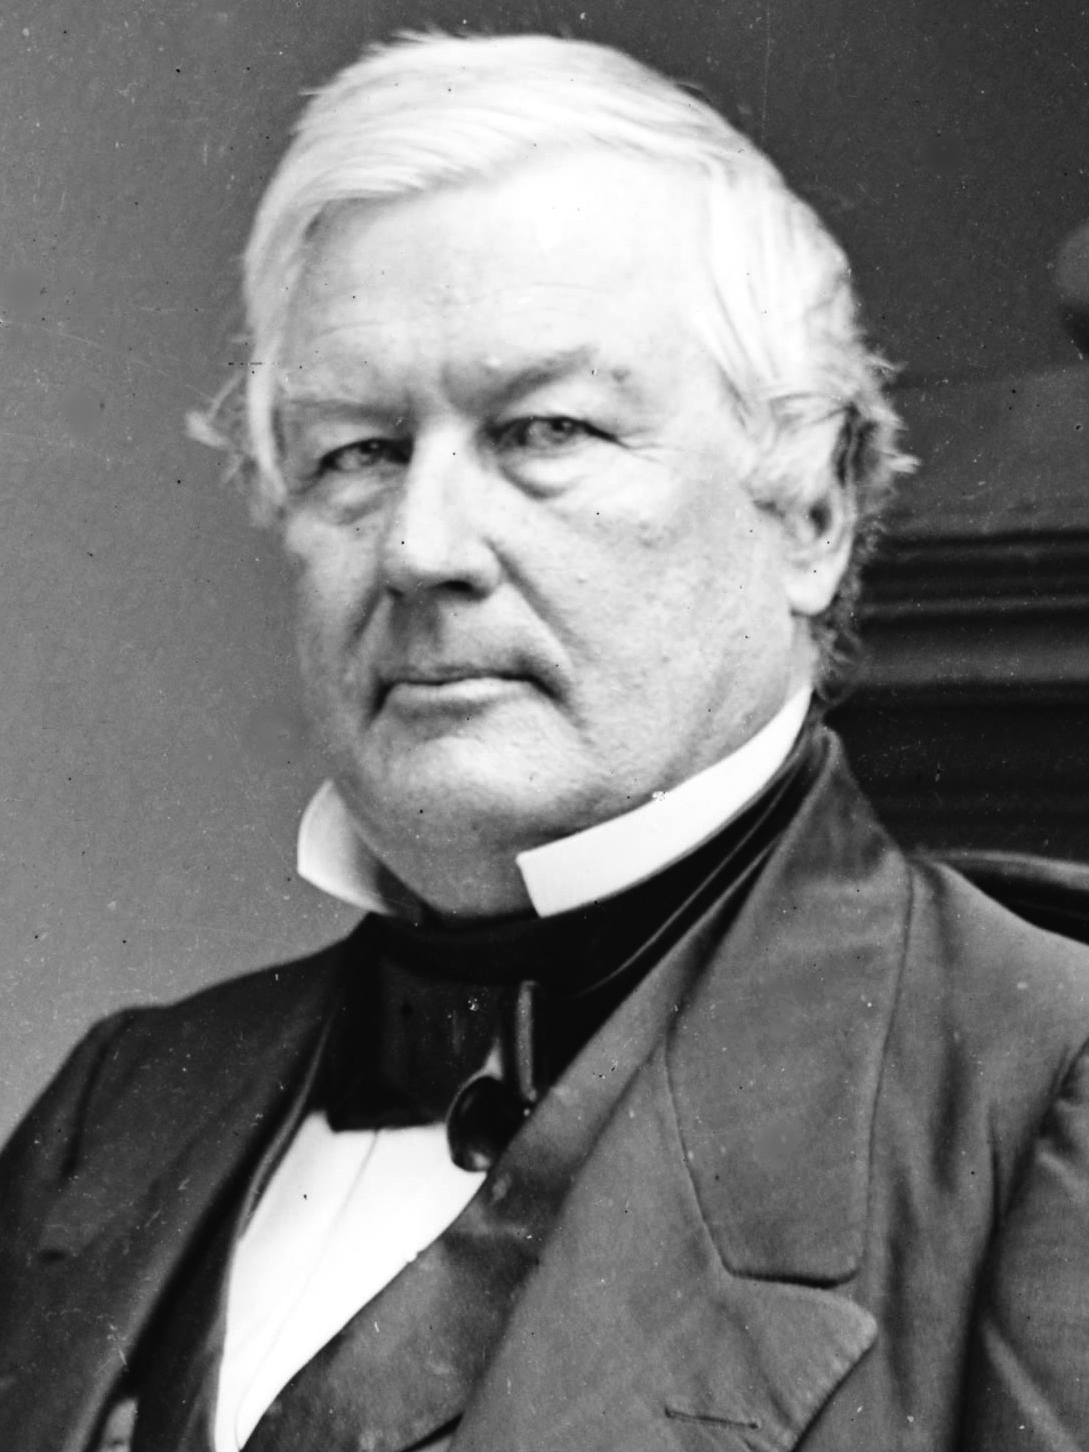 the gregory family connection to president millard fillmore